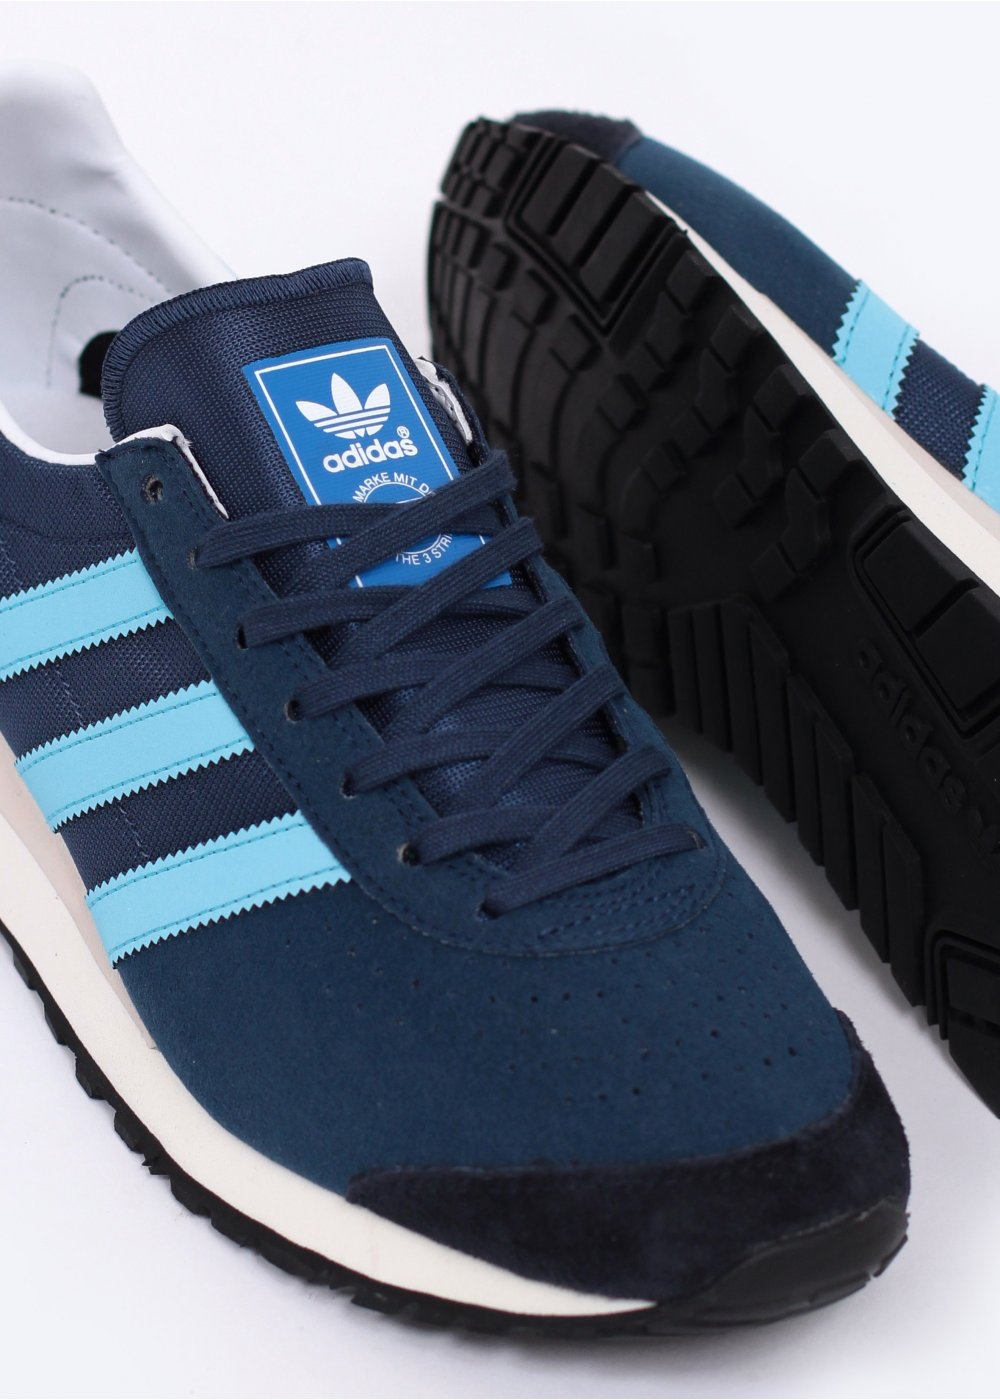 adidas originals marathon 85 trainers